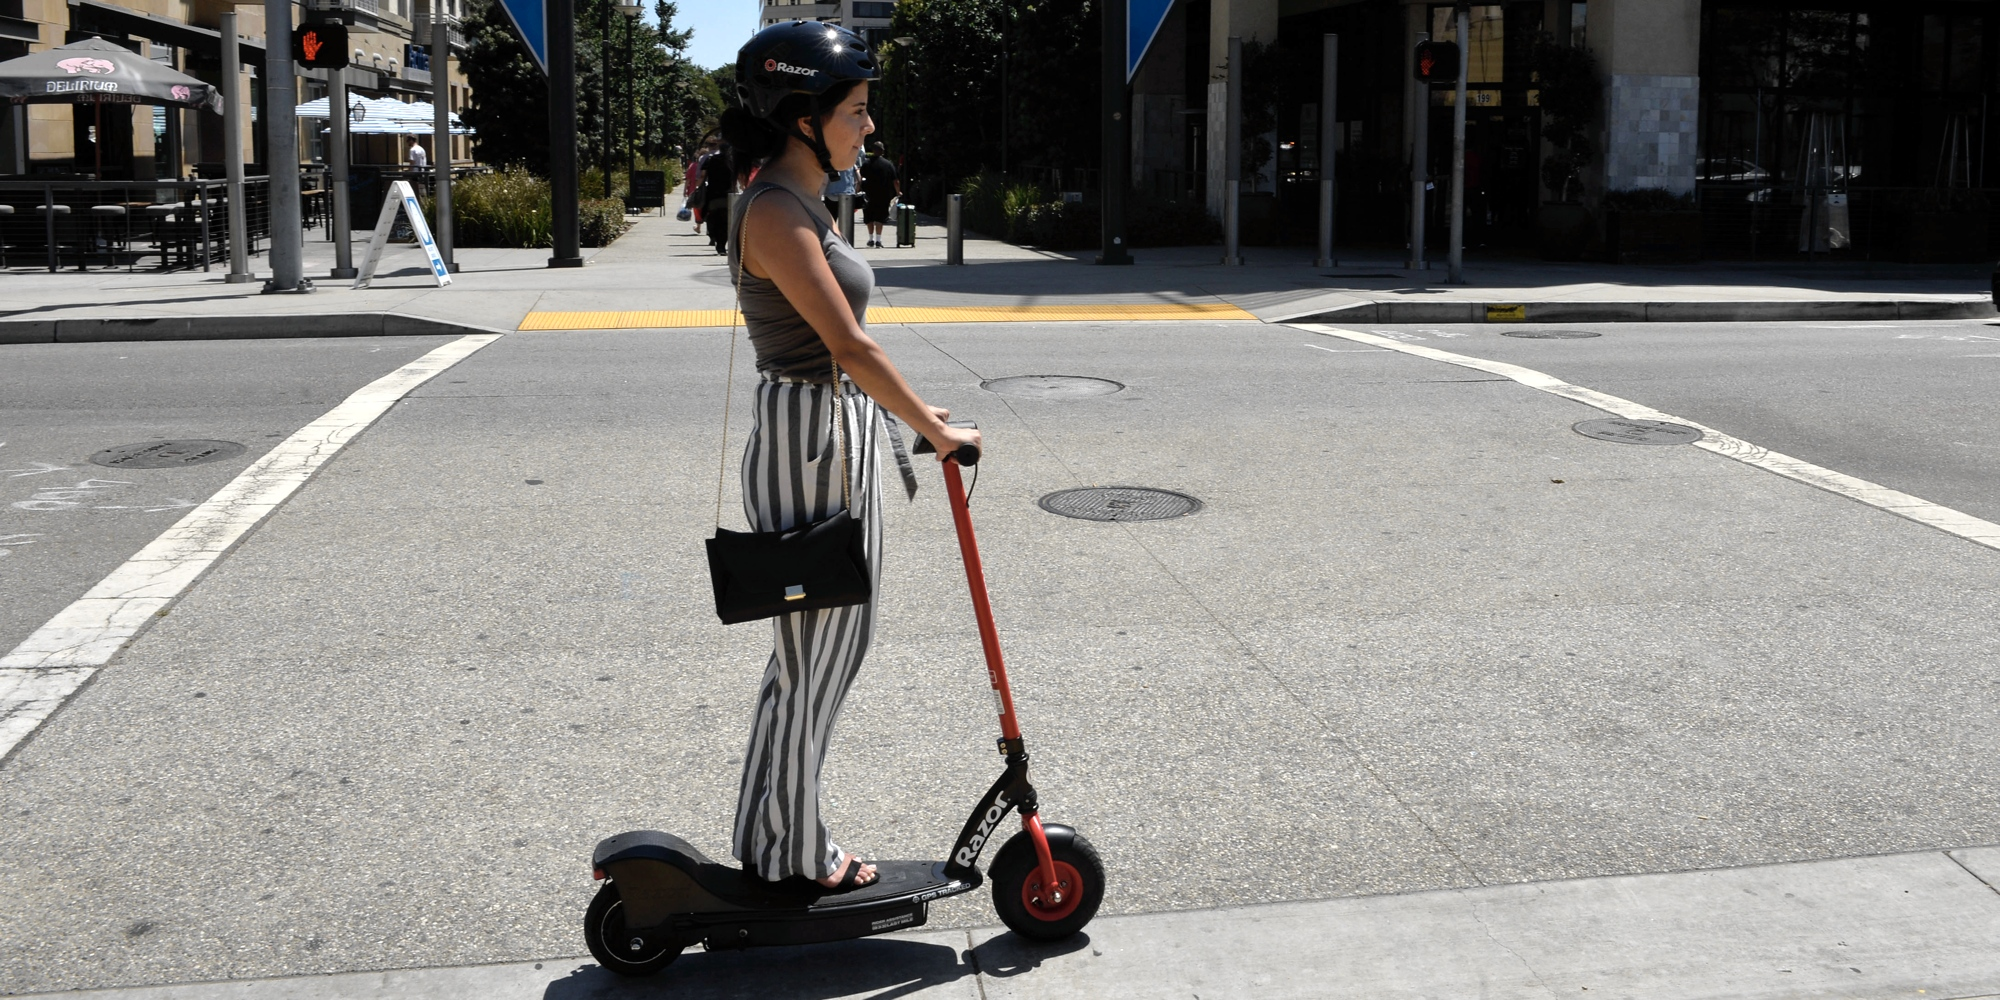 Razor Joins The Wave Of Electric Scooter Rentals Becoming First In